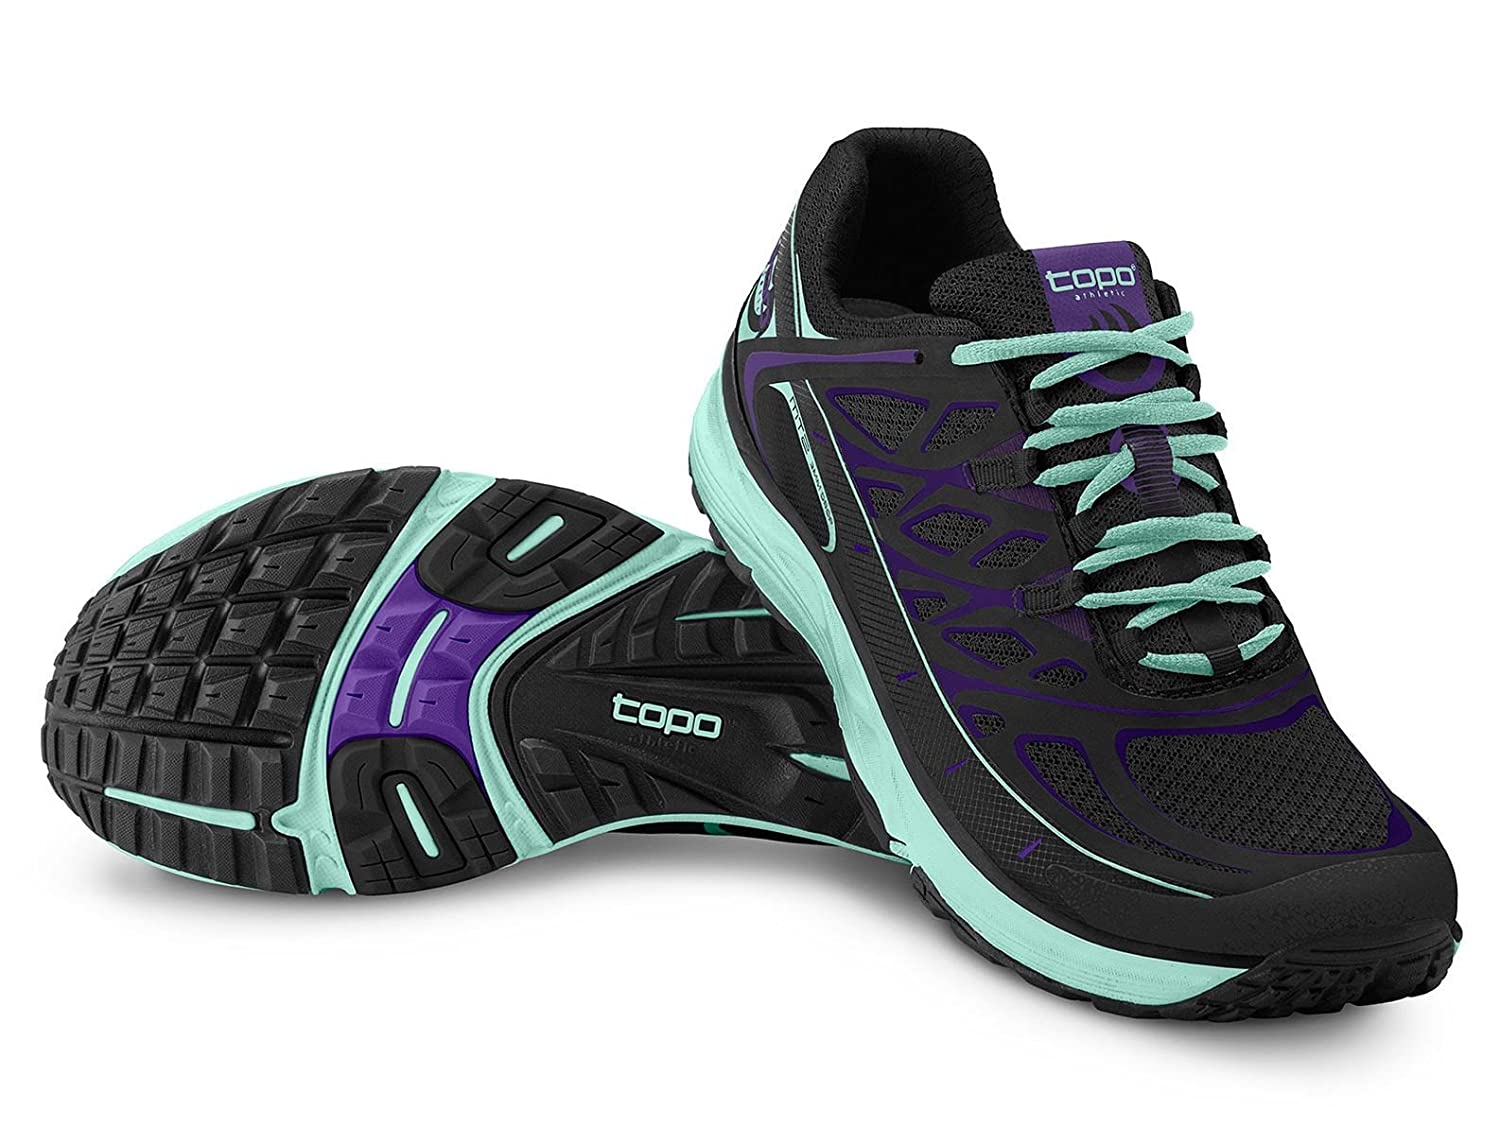 Topo Athletic MT2 Running Shoe - Men's B06XGKZ77Z 8.5 B(M) US|Black/Ice